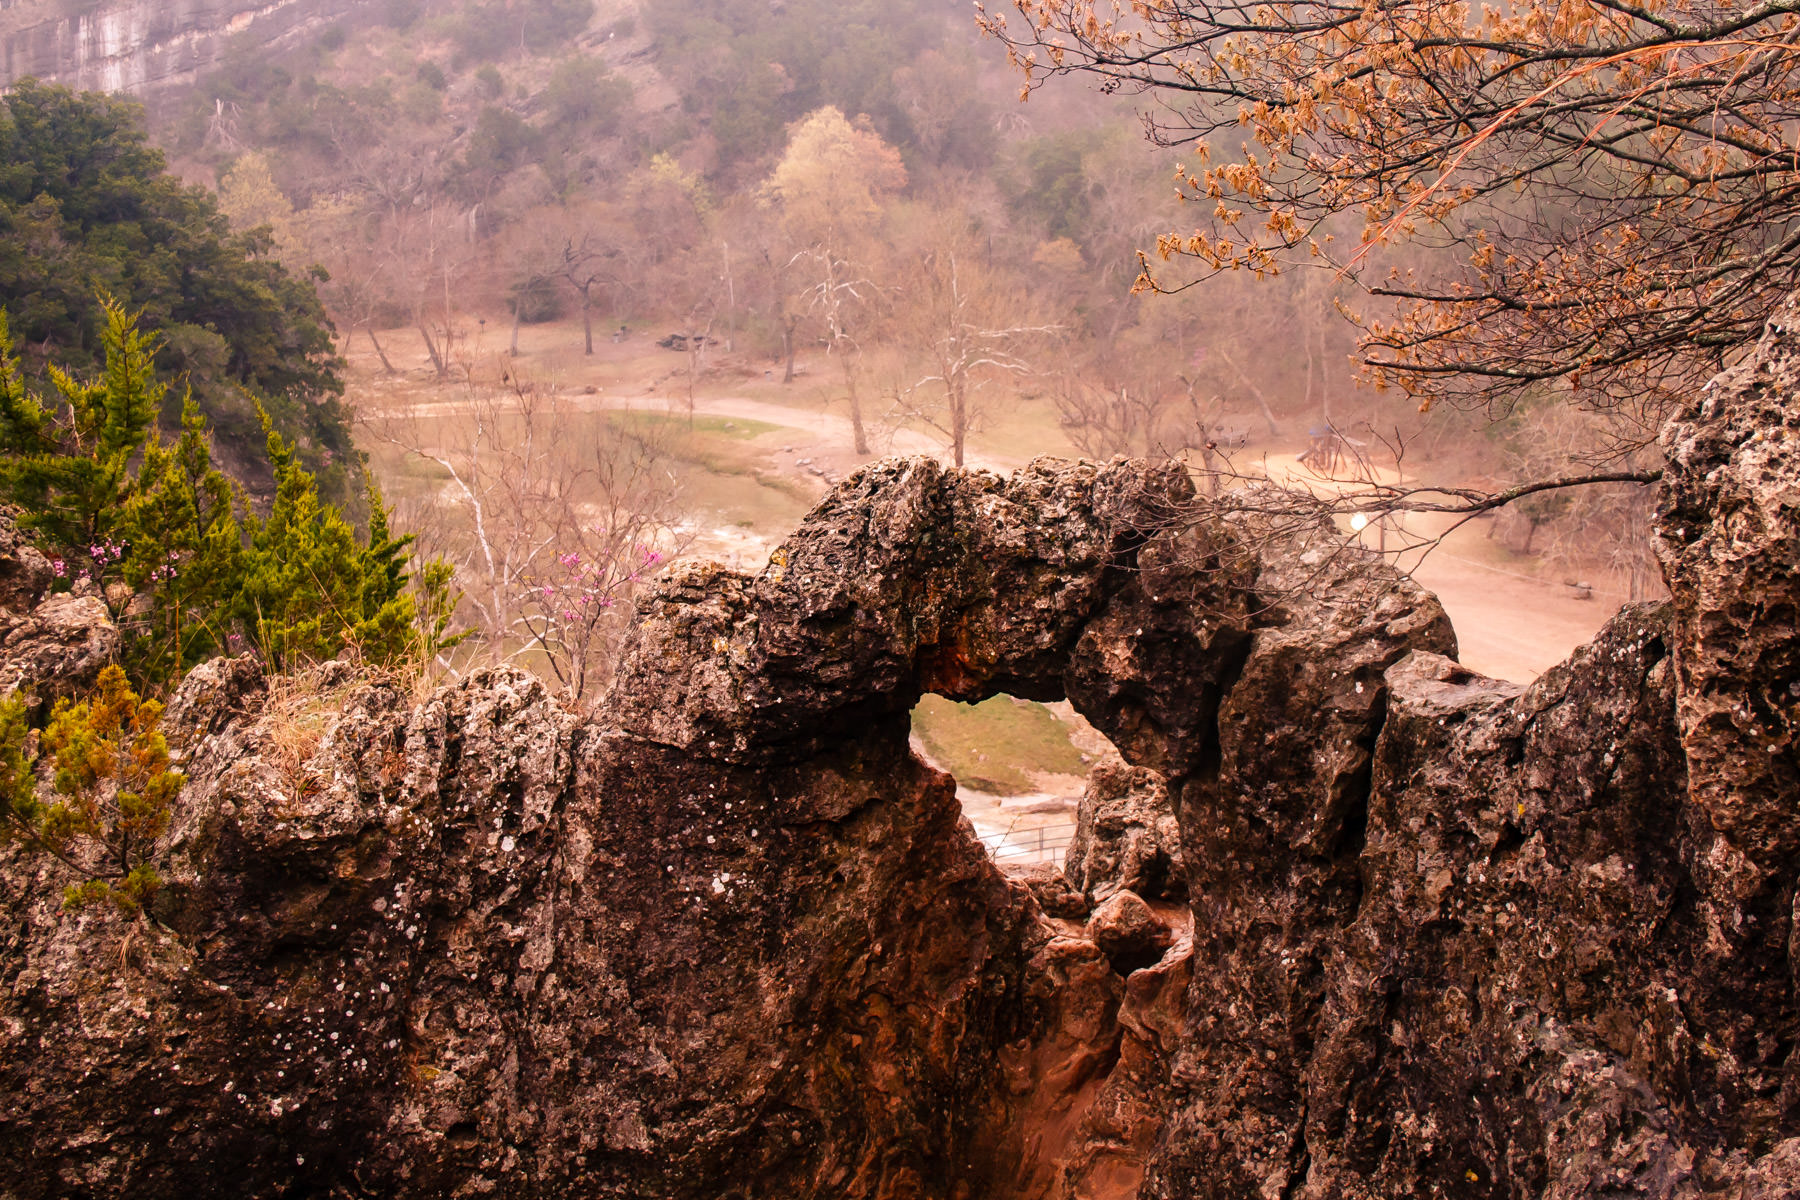 A hole in a rock formation at Turner Falls Park, Oklahoma.